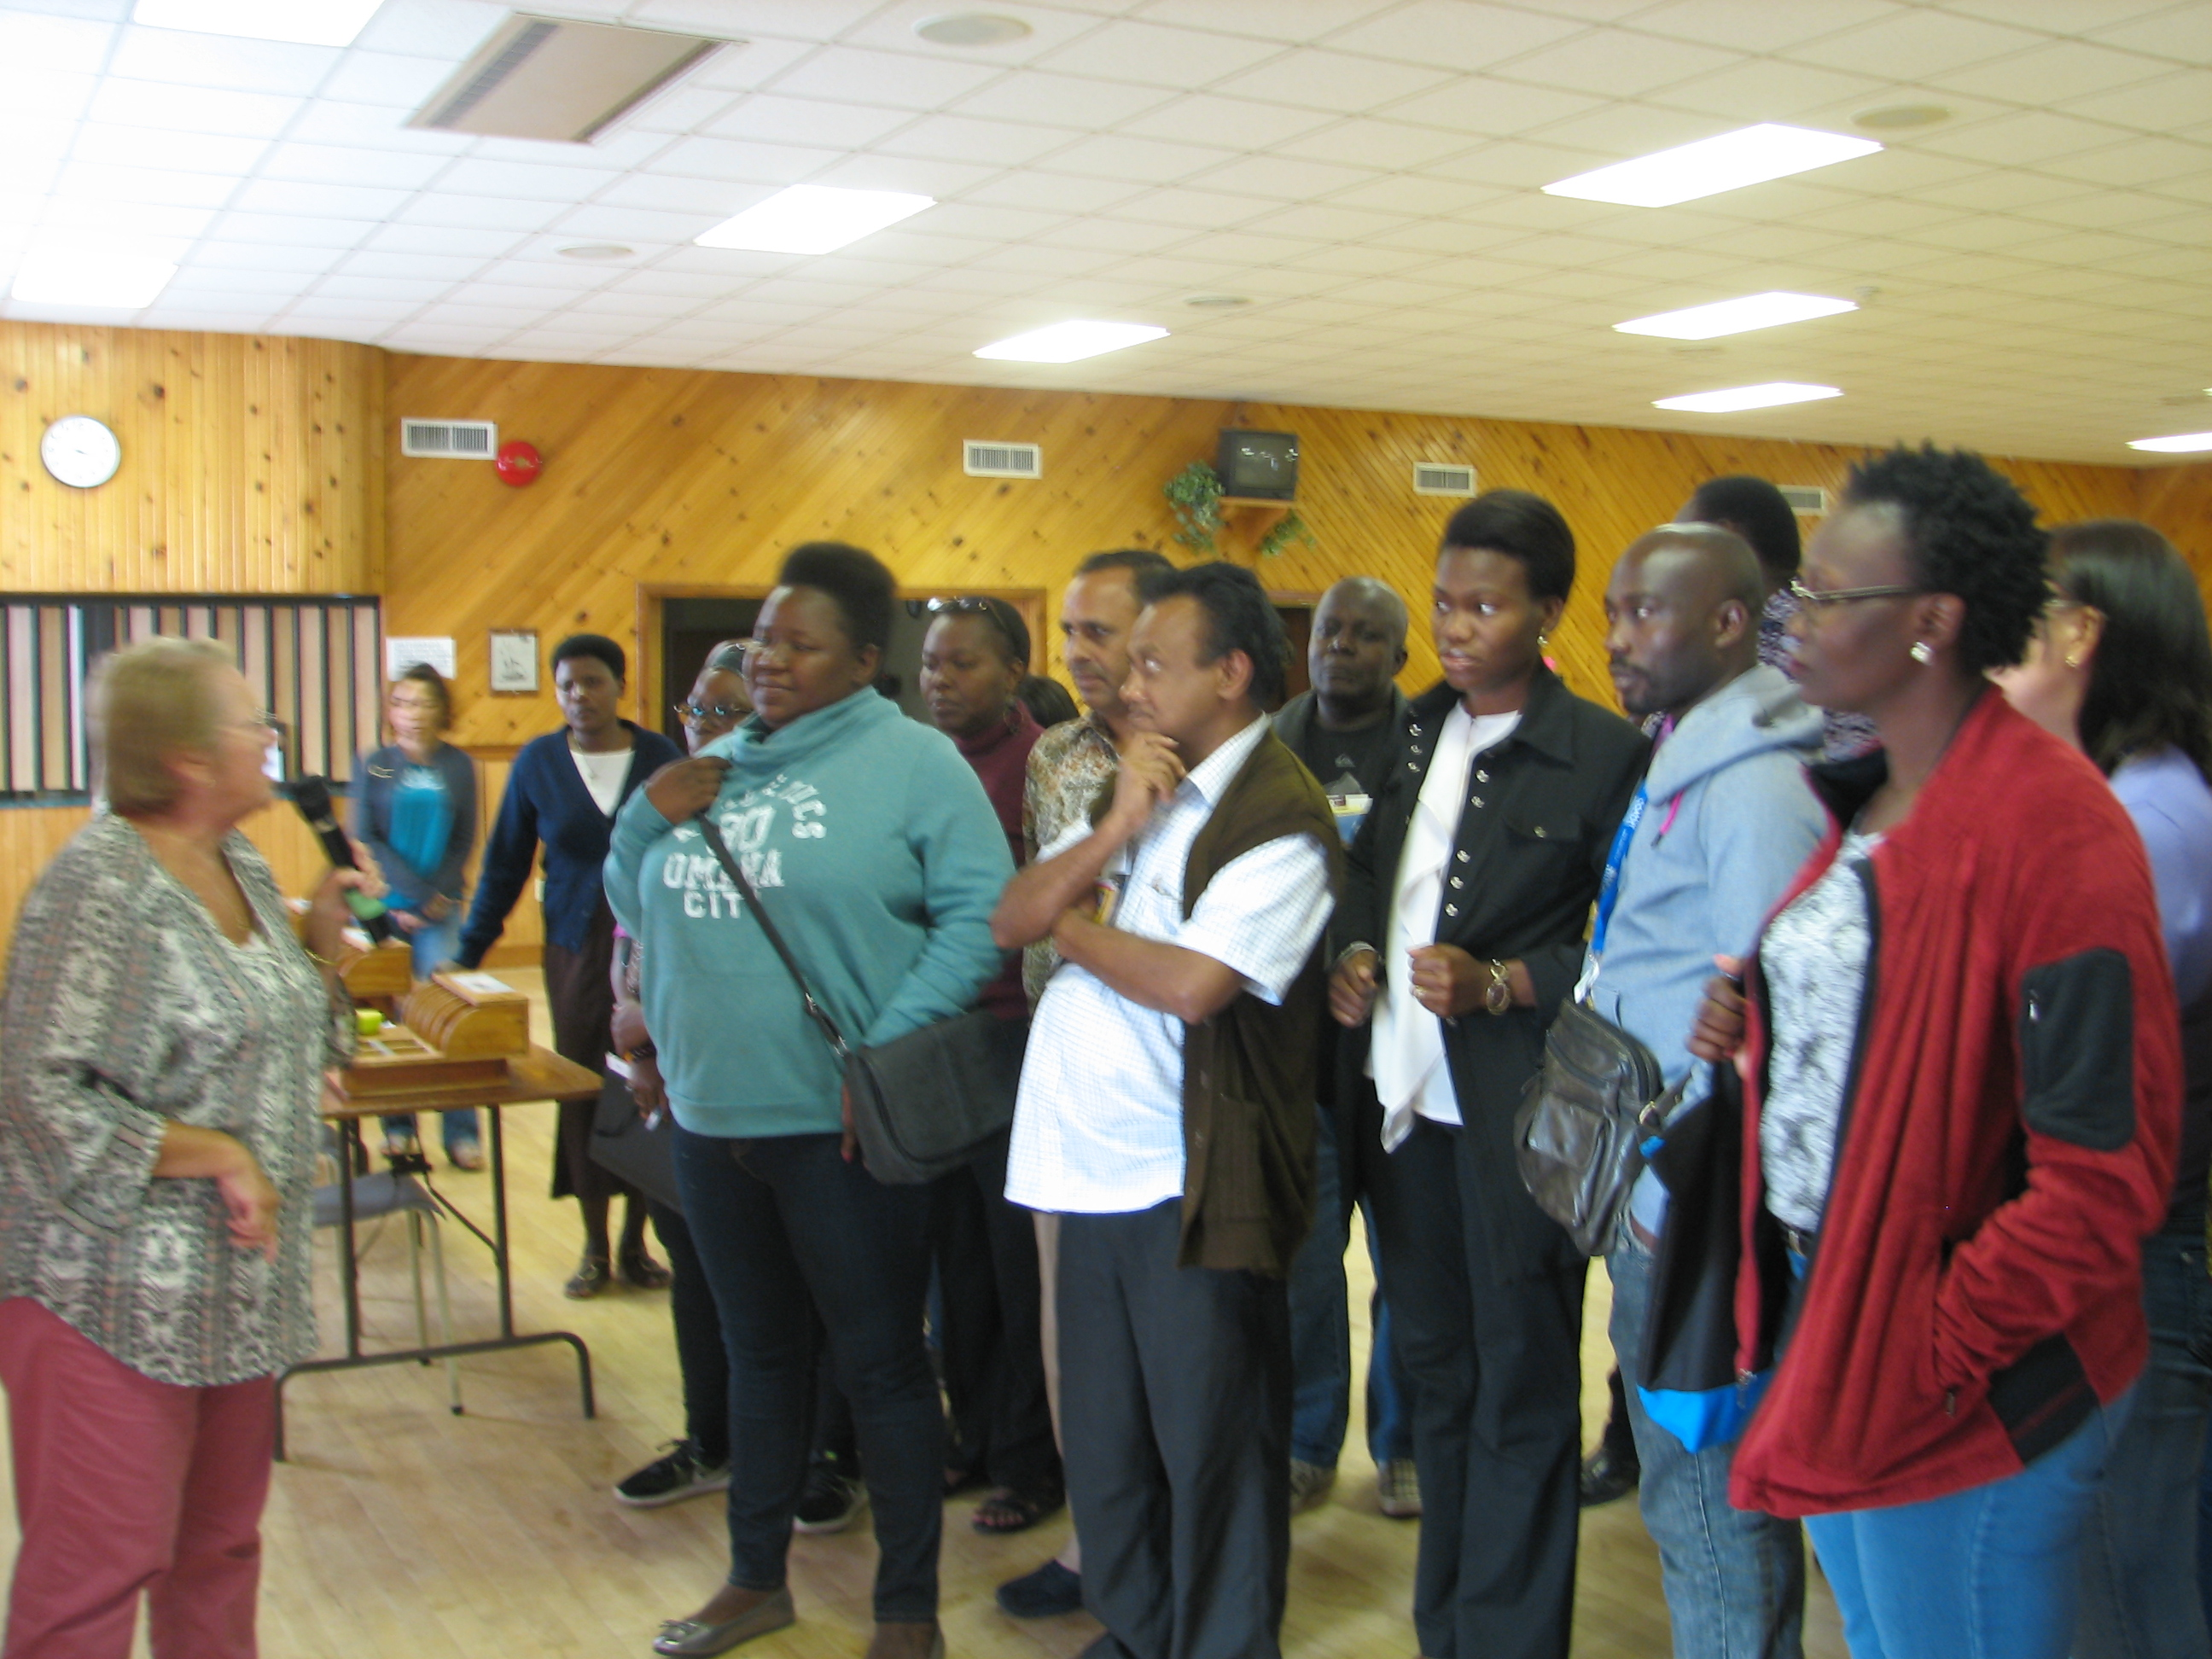 Coady participants at the community center